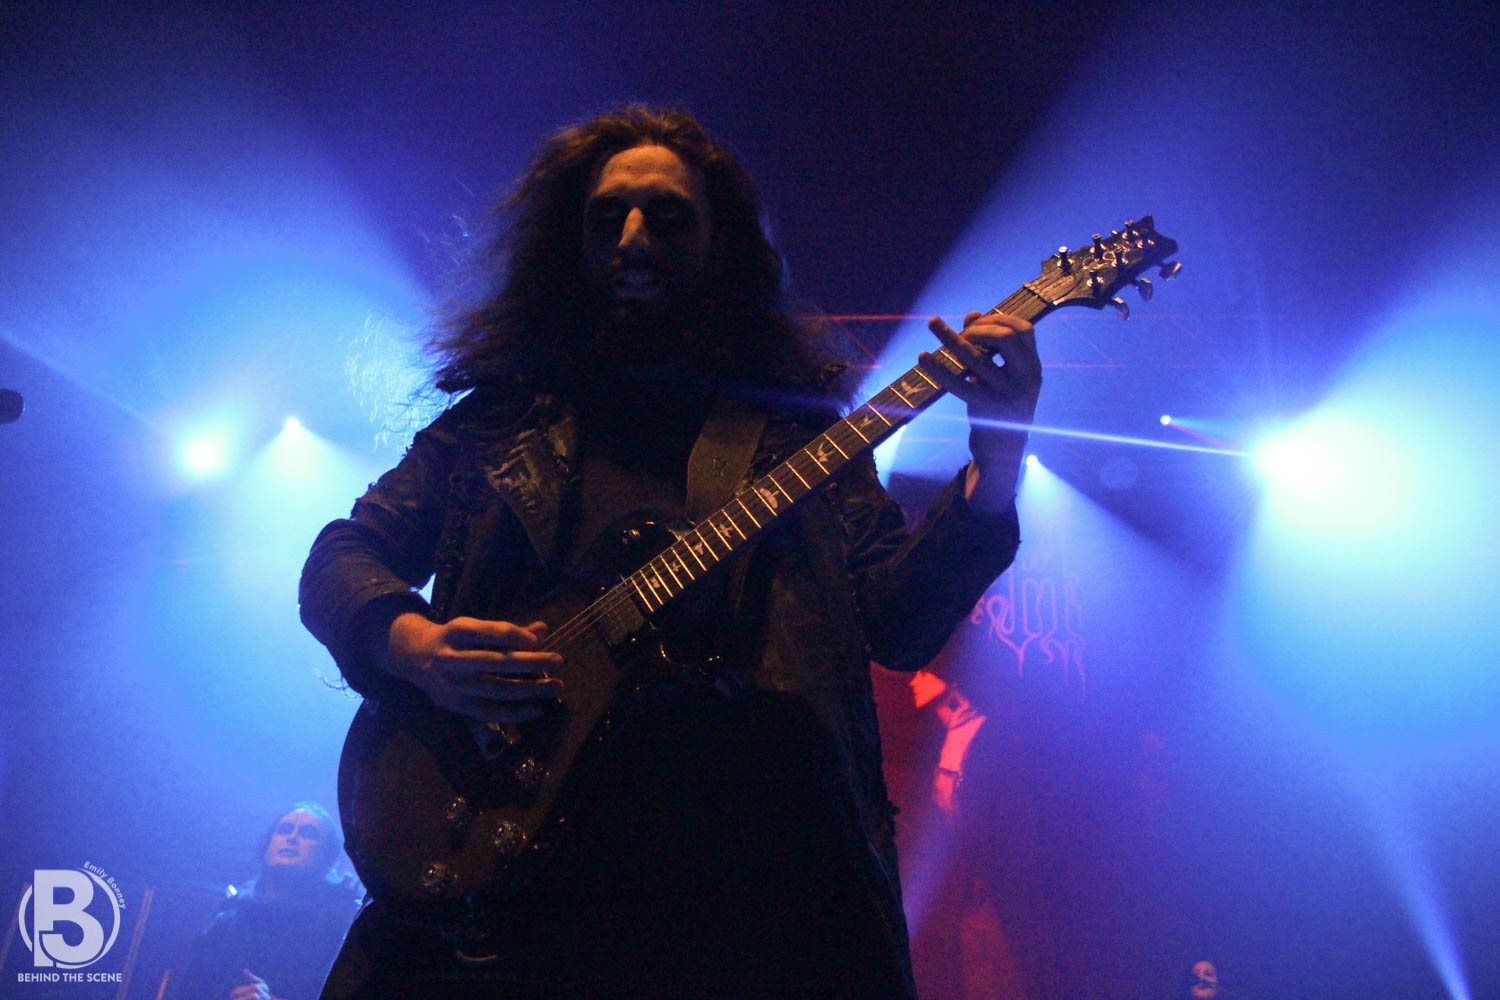 040818 CradleofFilth EB-2476.jpg